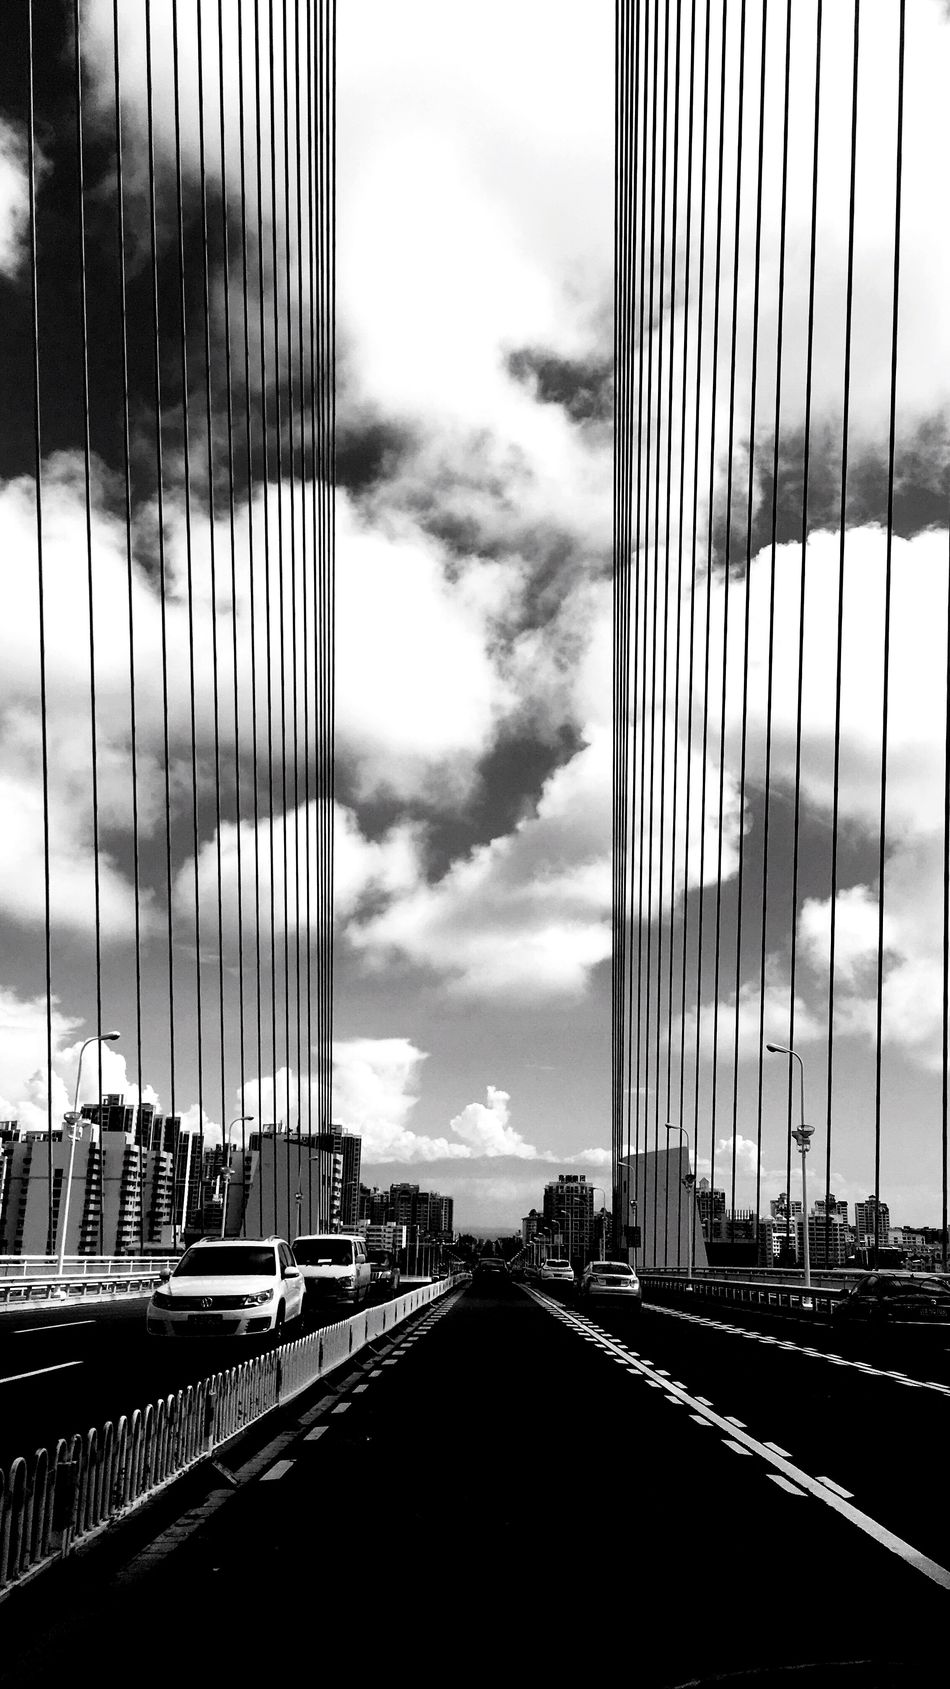 Architecture Sky Built Structure Transportation Day Cloud - Sky No People Modern Outdoors EyeEmNewHere Break The Mold